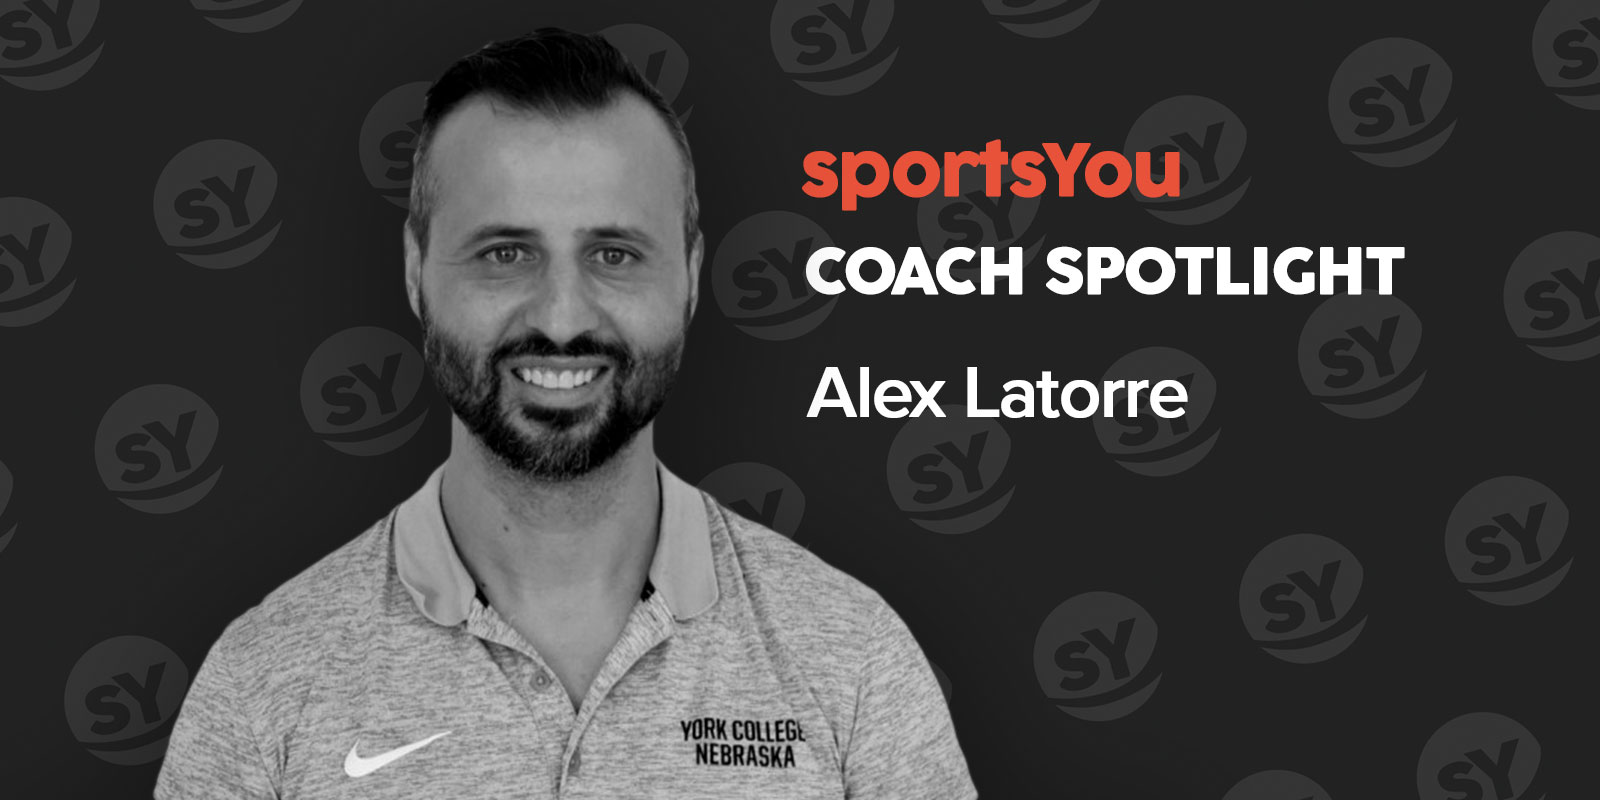 sportsYou Coach Spotlight: Q&A with Coach Alex Latorre